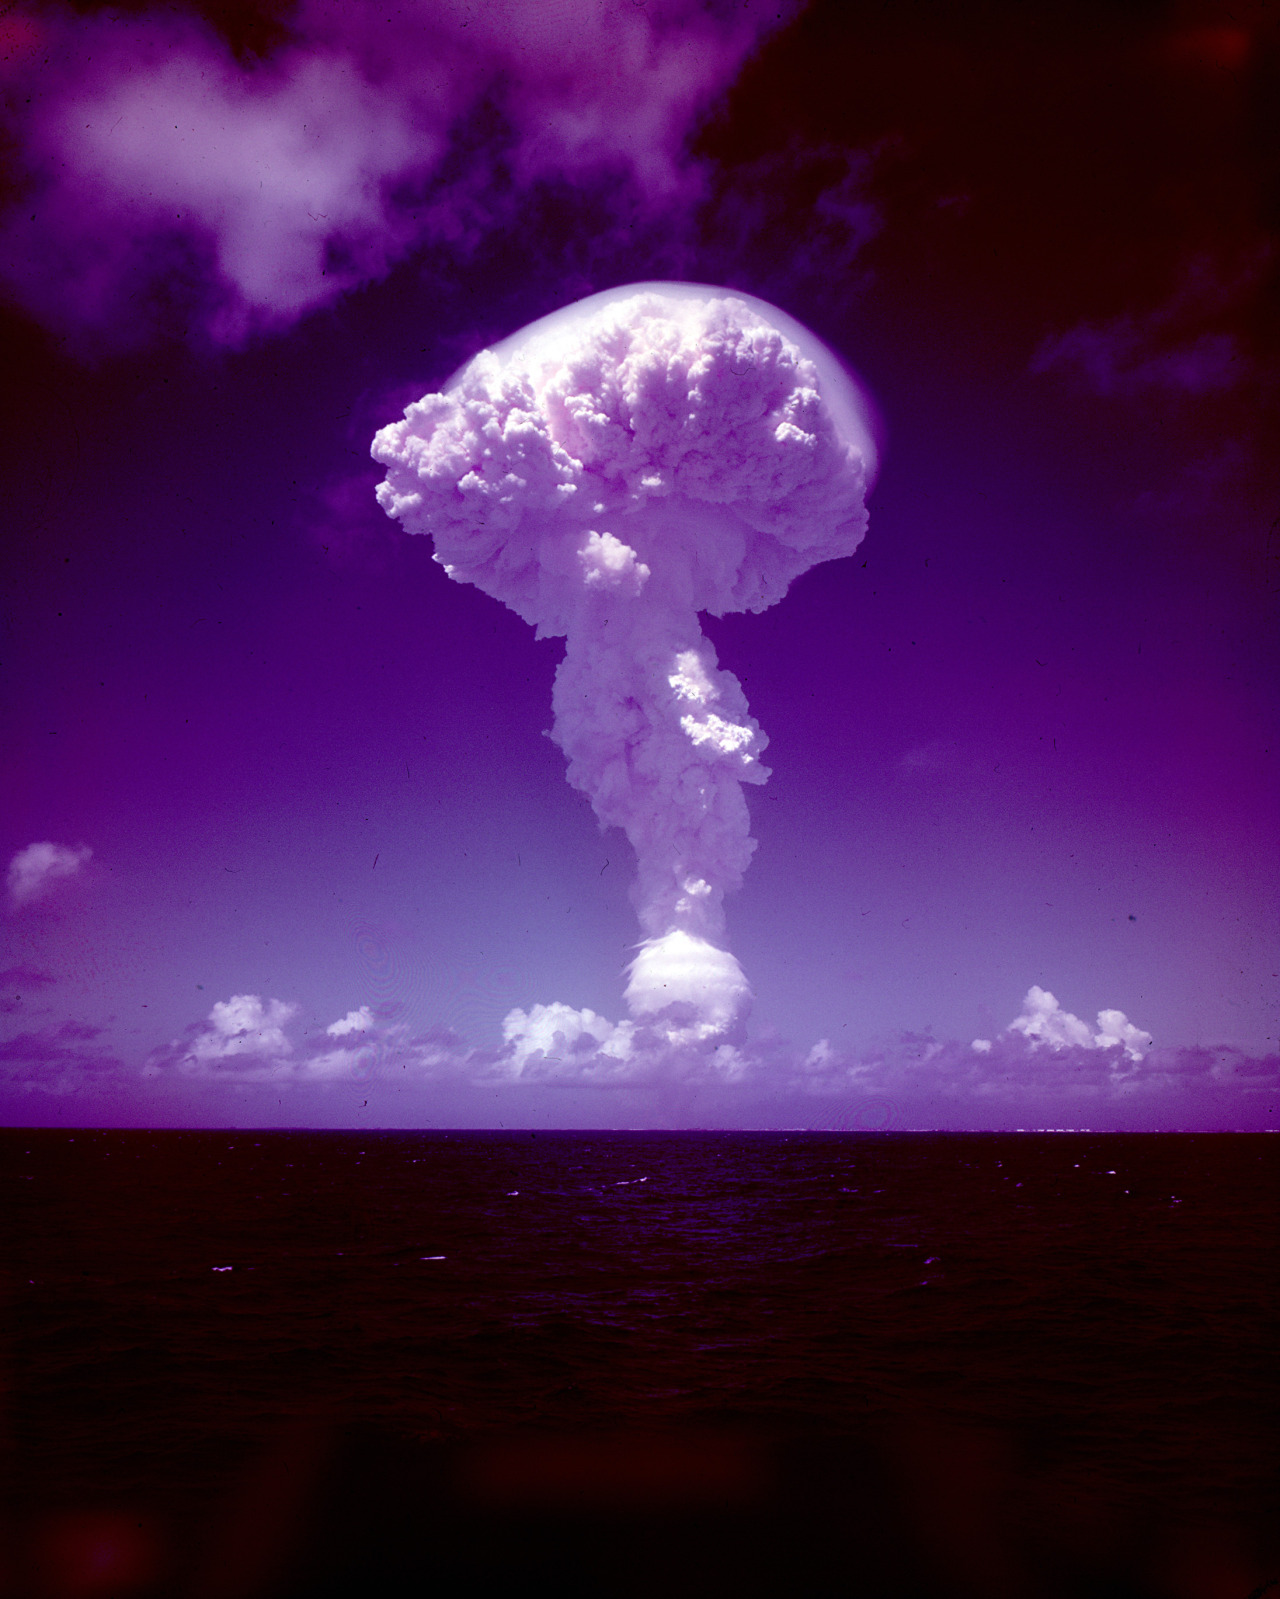 f747ff780ae The Pure-Fission Nuclear Bomb Ivy King Detonated, November 15, 1952 ...